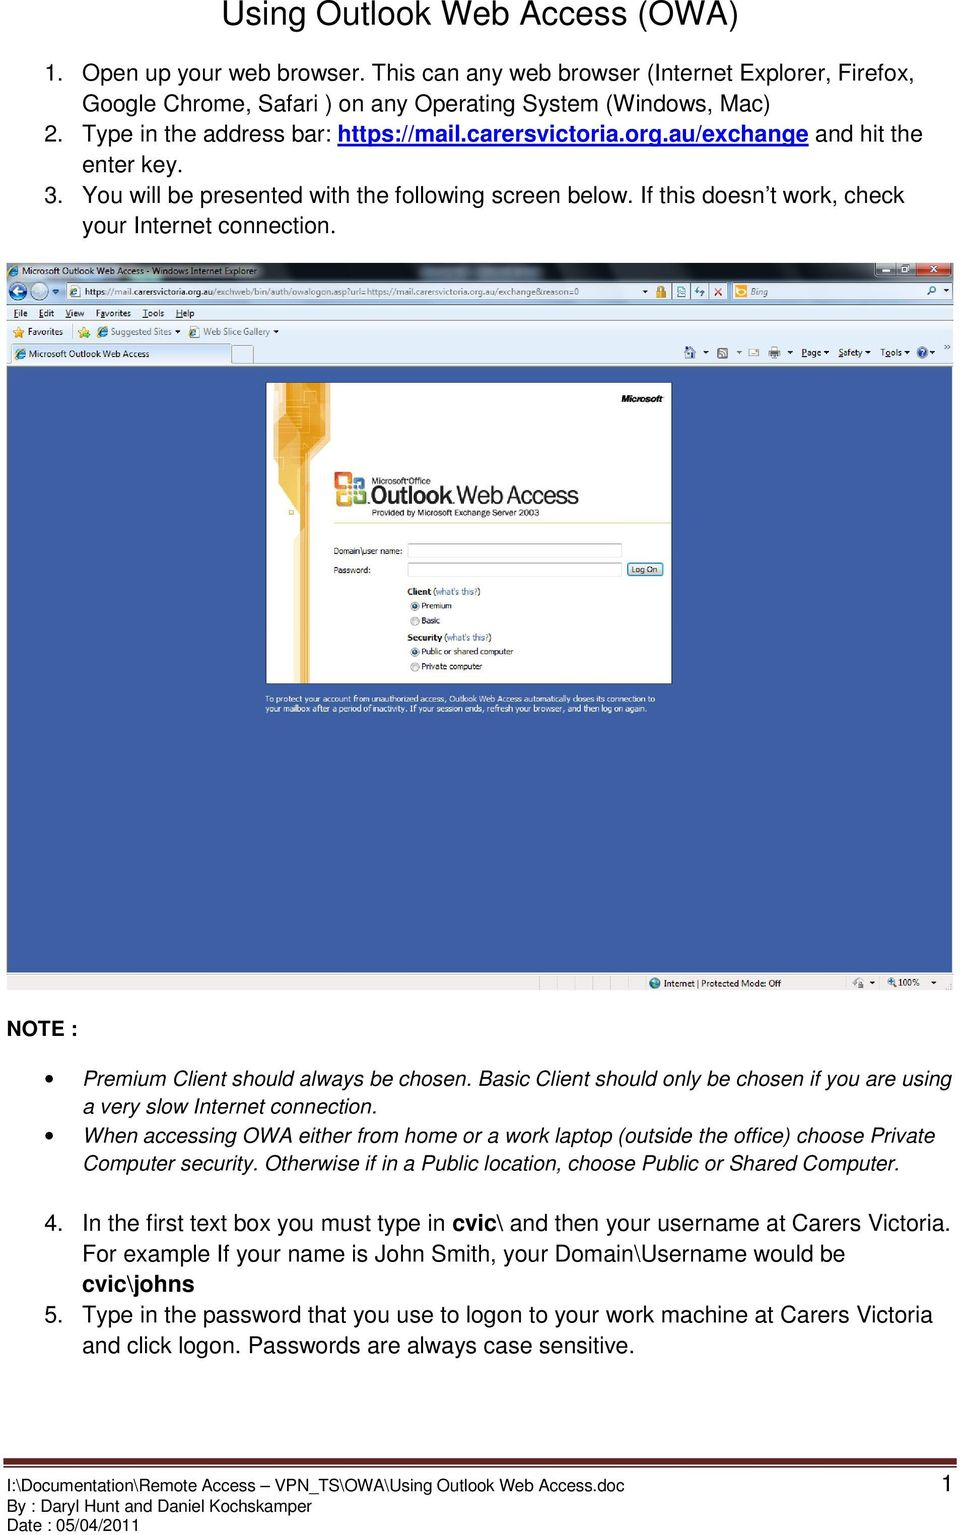 Using Outlook Web Access Owa Pdf